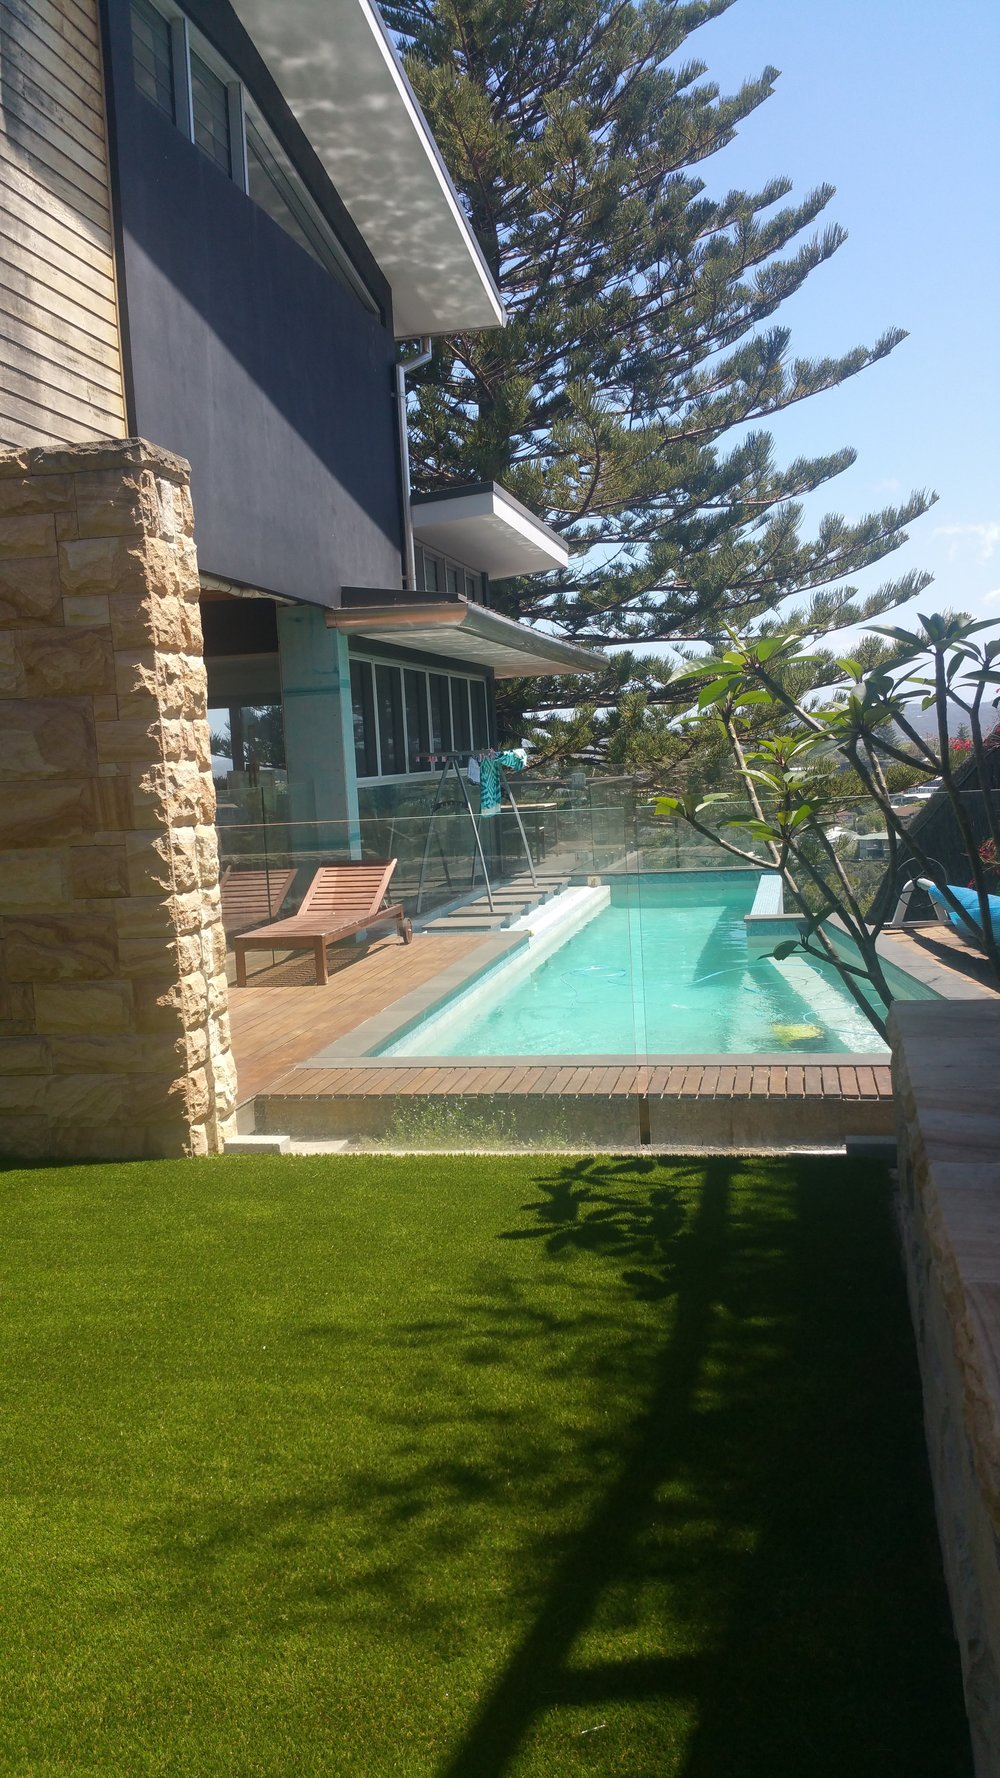 #poolssyntheticgrass#premiumsyntheticgrasssydney#dogs.synthetic.grass#pets#royalgrasssilk35#royal.grass.